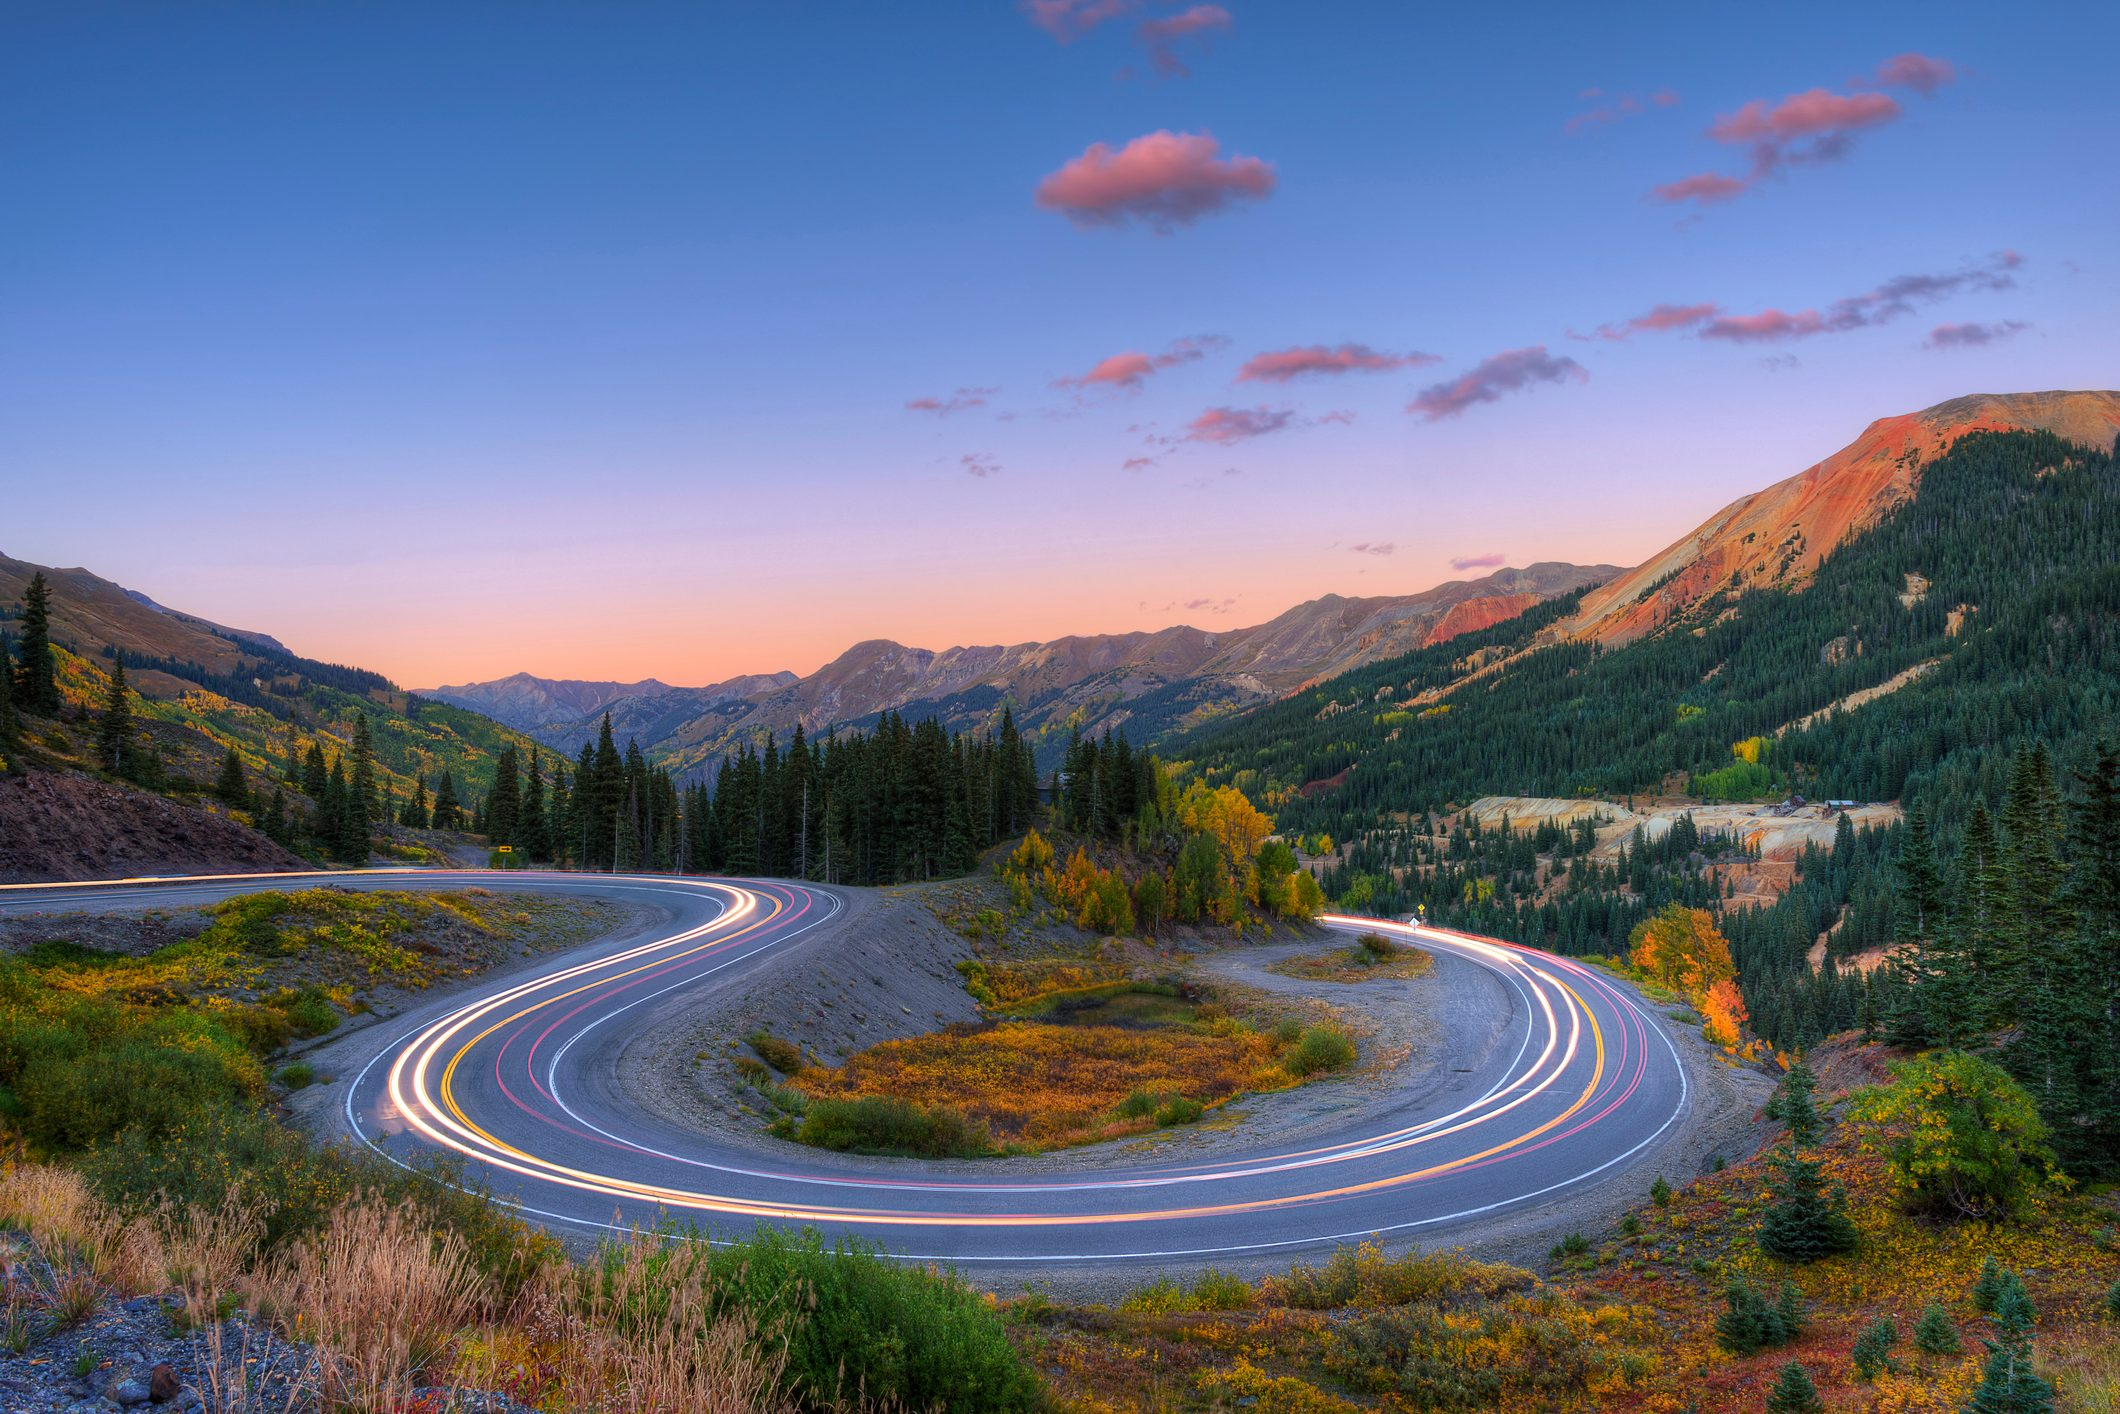 Light Trails on a switchback turn at sunset on the Million Dollar Highway, Colorado